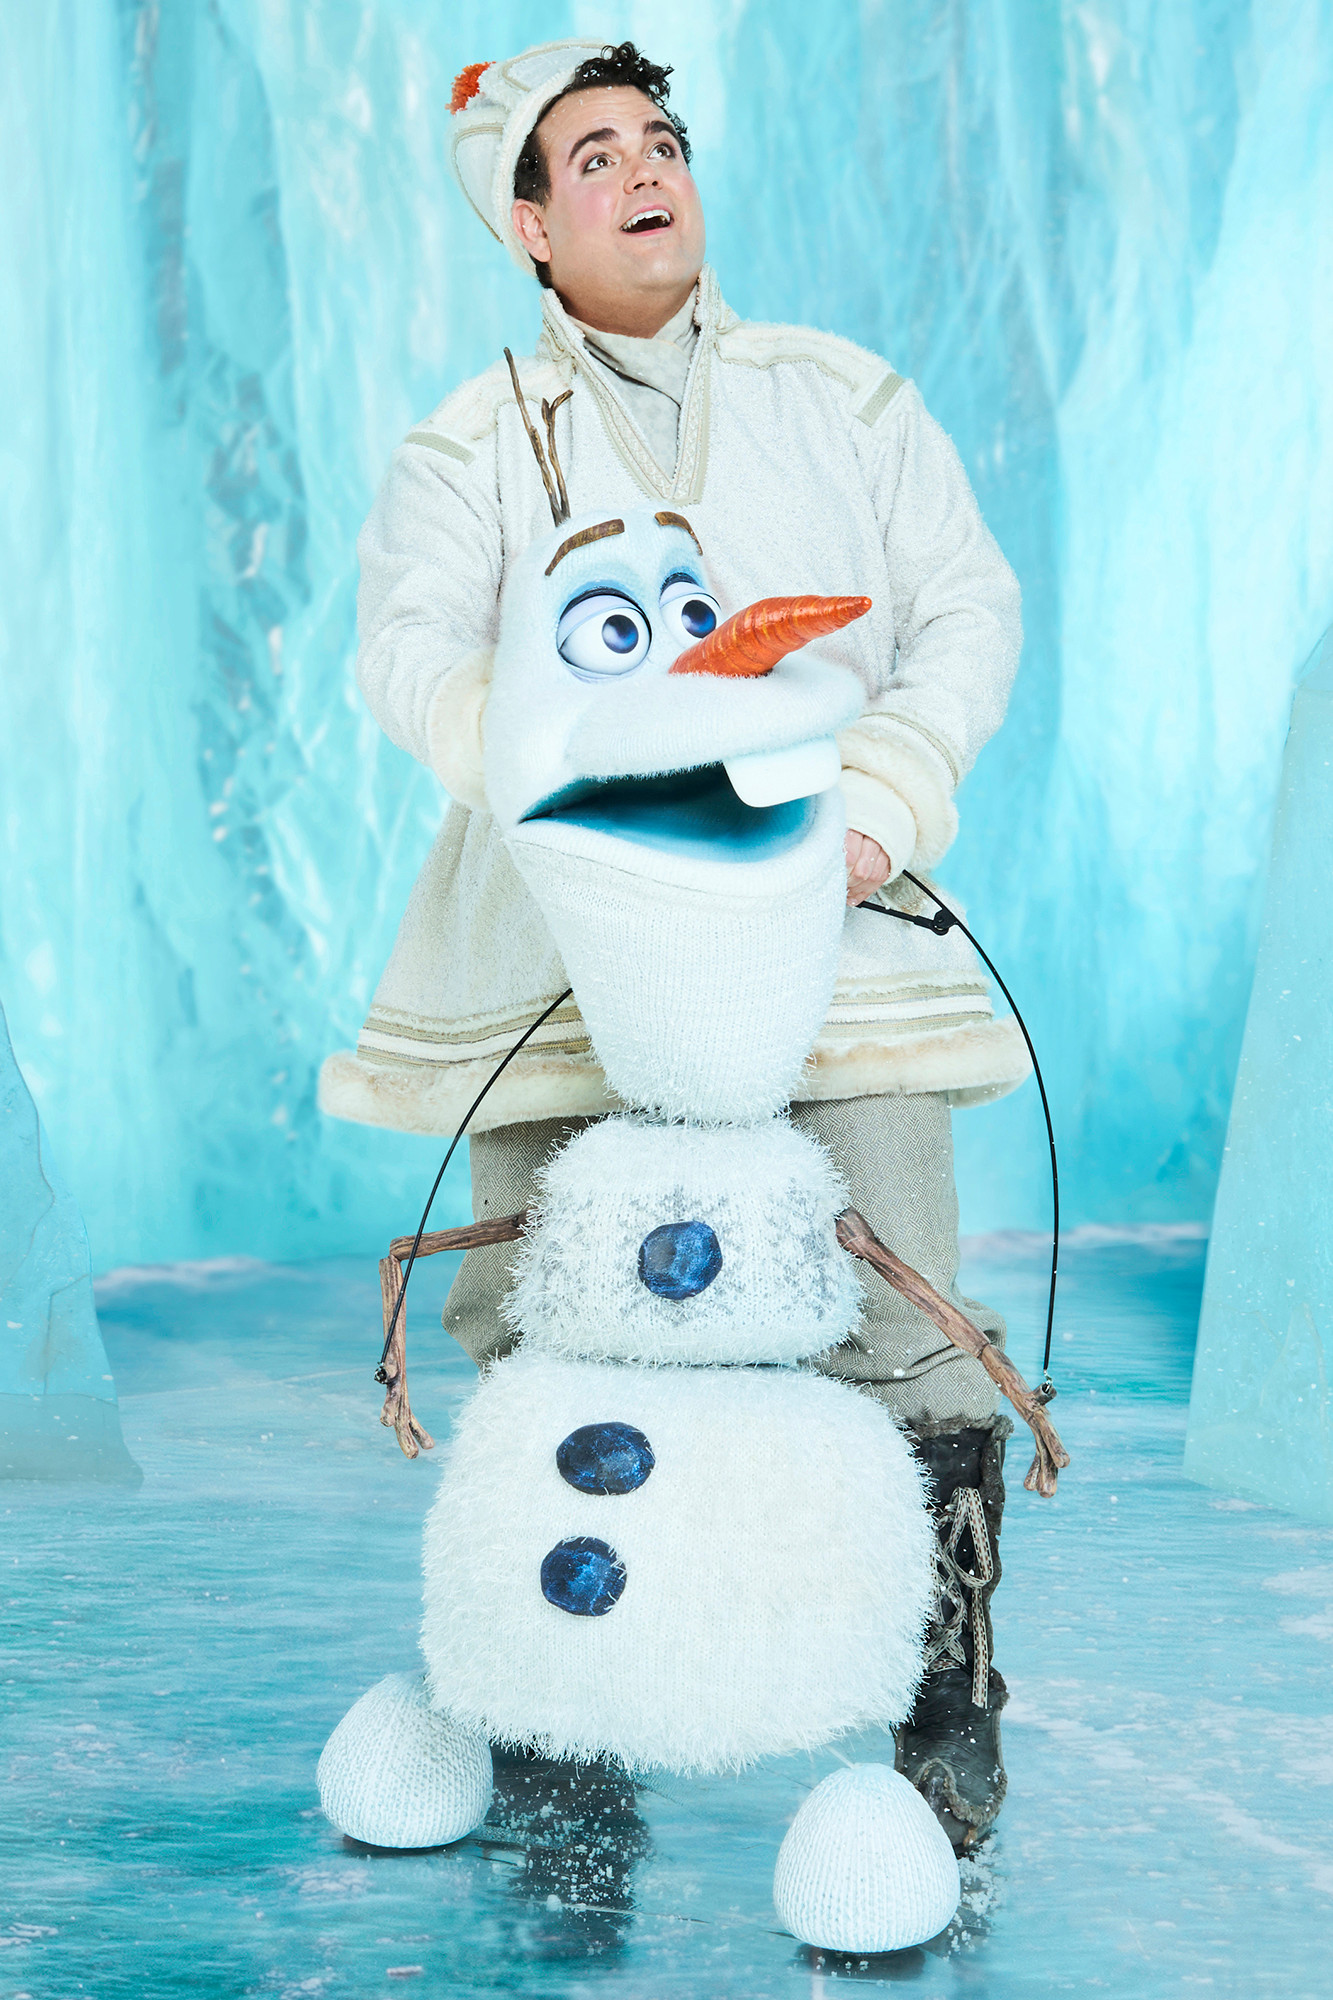 """Greg Hildreth gives voice and movement to Olaf, the puppet he calls 'my new best friend.'"" Credit: Michael Reidel/The New York Post, Entertainment."